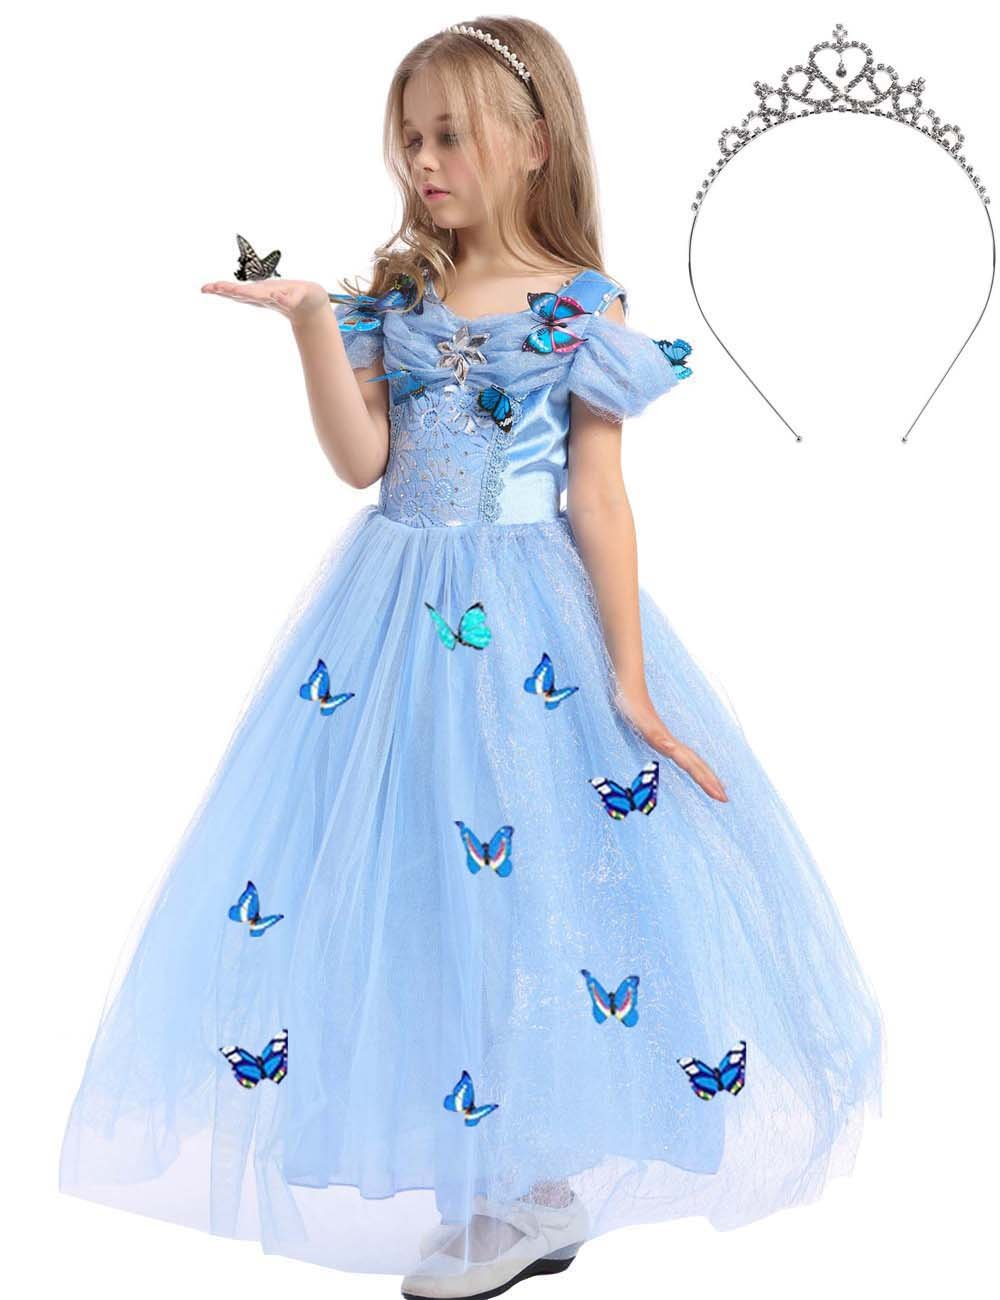 JYH Girls' New Cinderella Princess Sleeveless Dress Butterfly Party Costumes with Crown